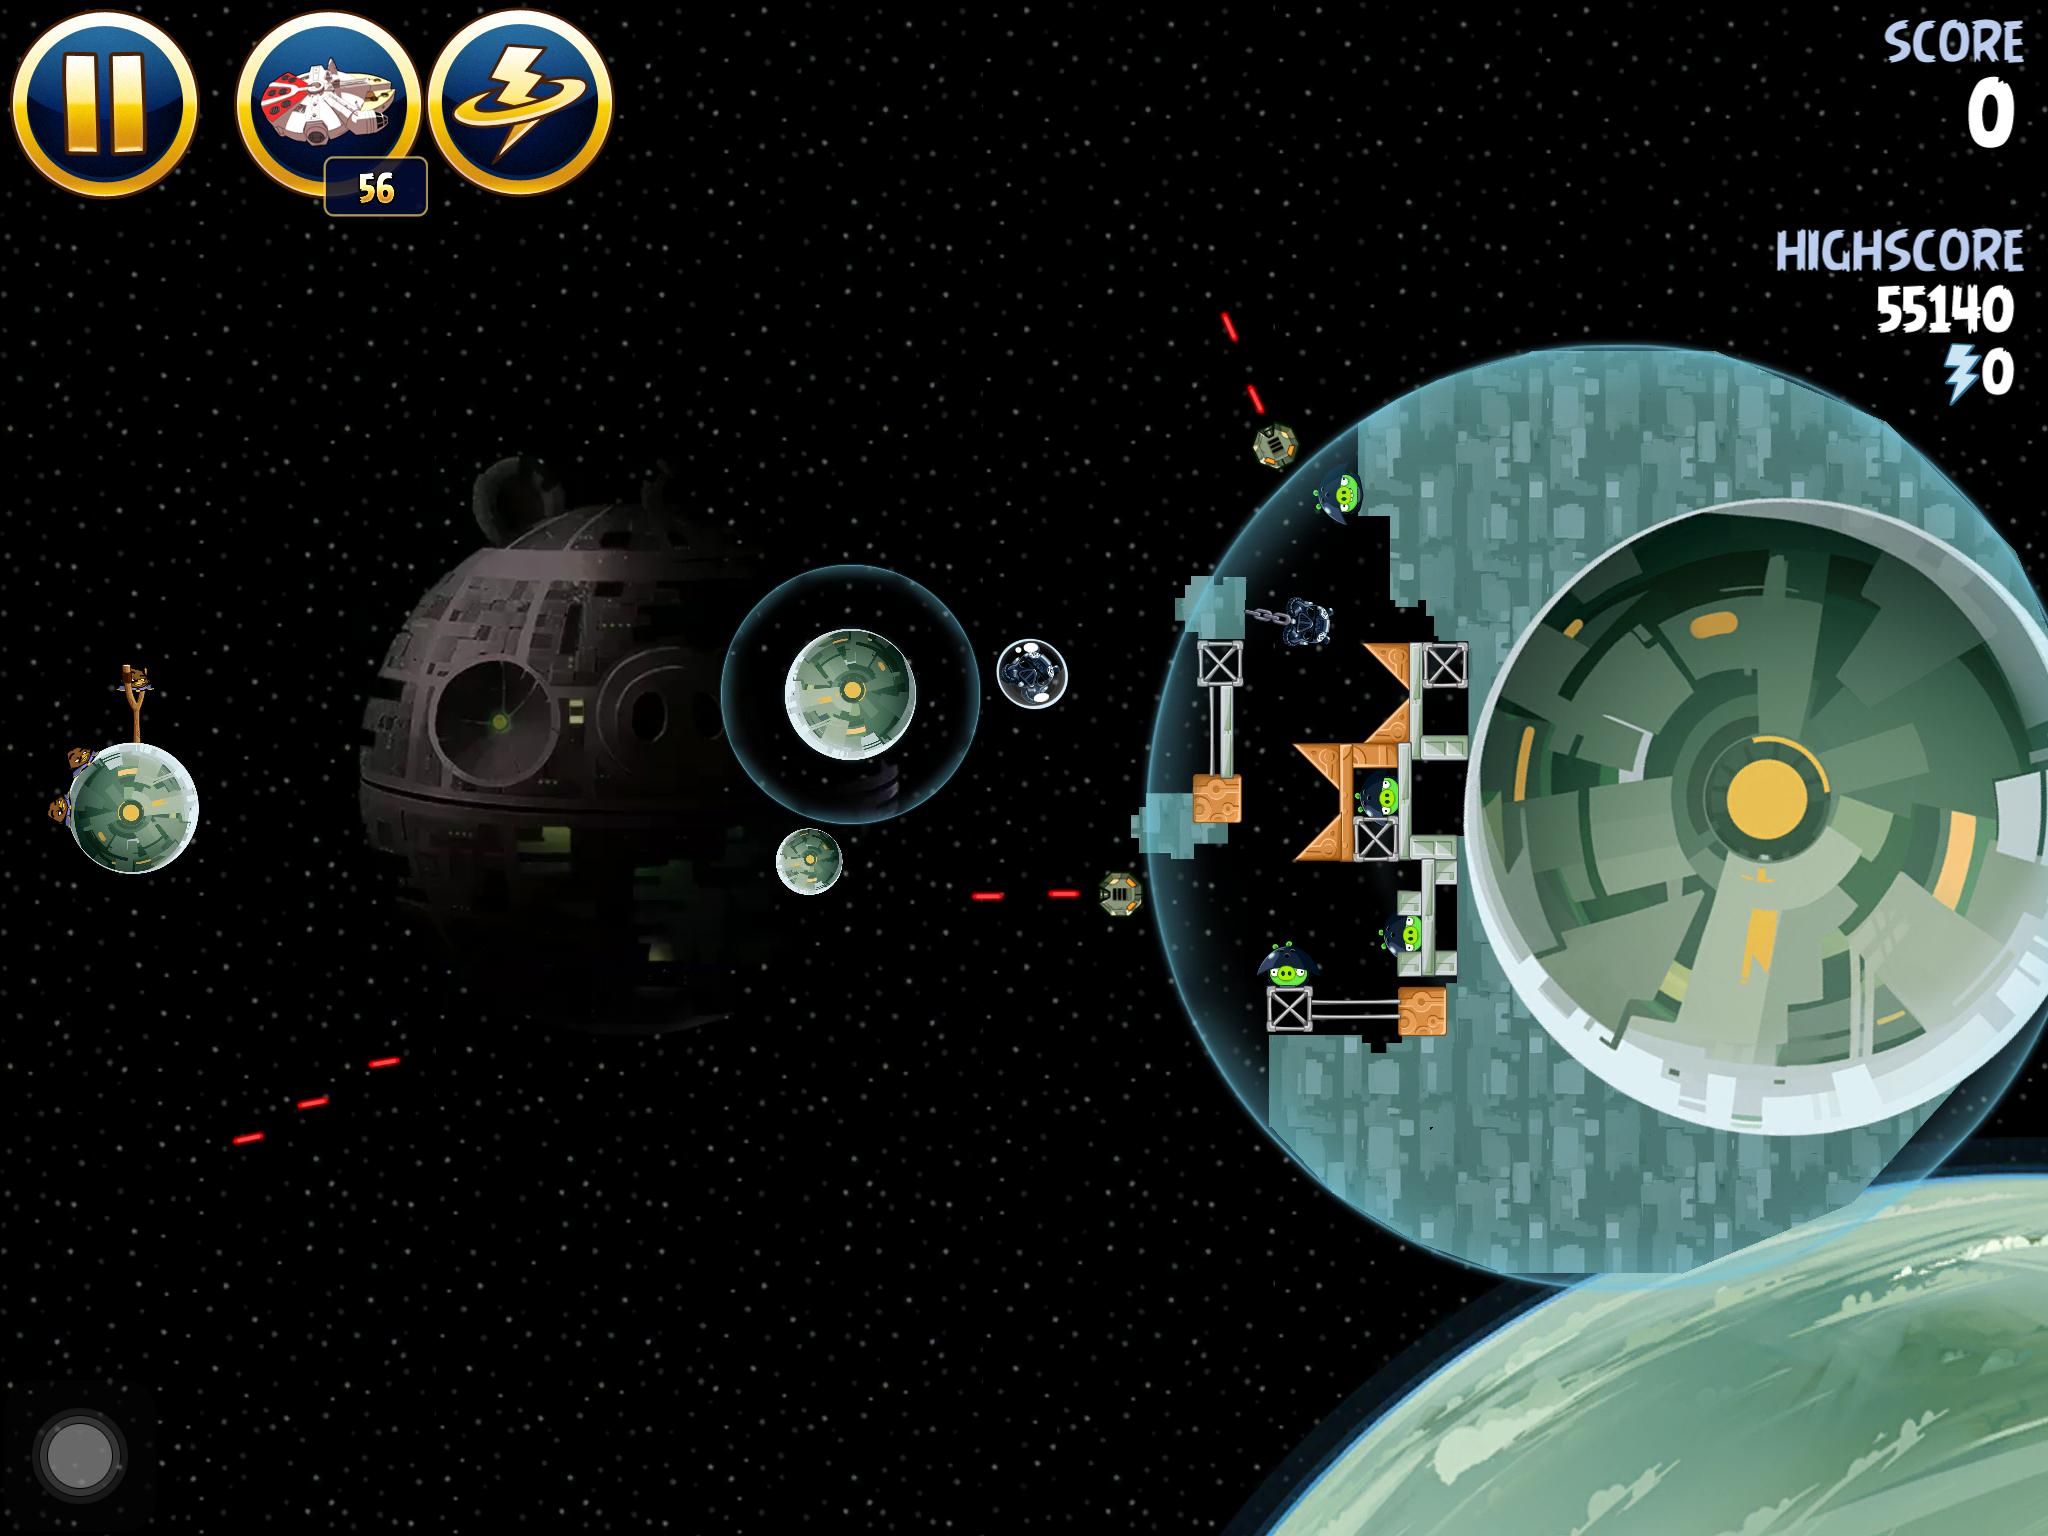 Death Star 2 6-5 (Angry Birds Star Wars)